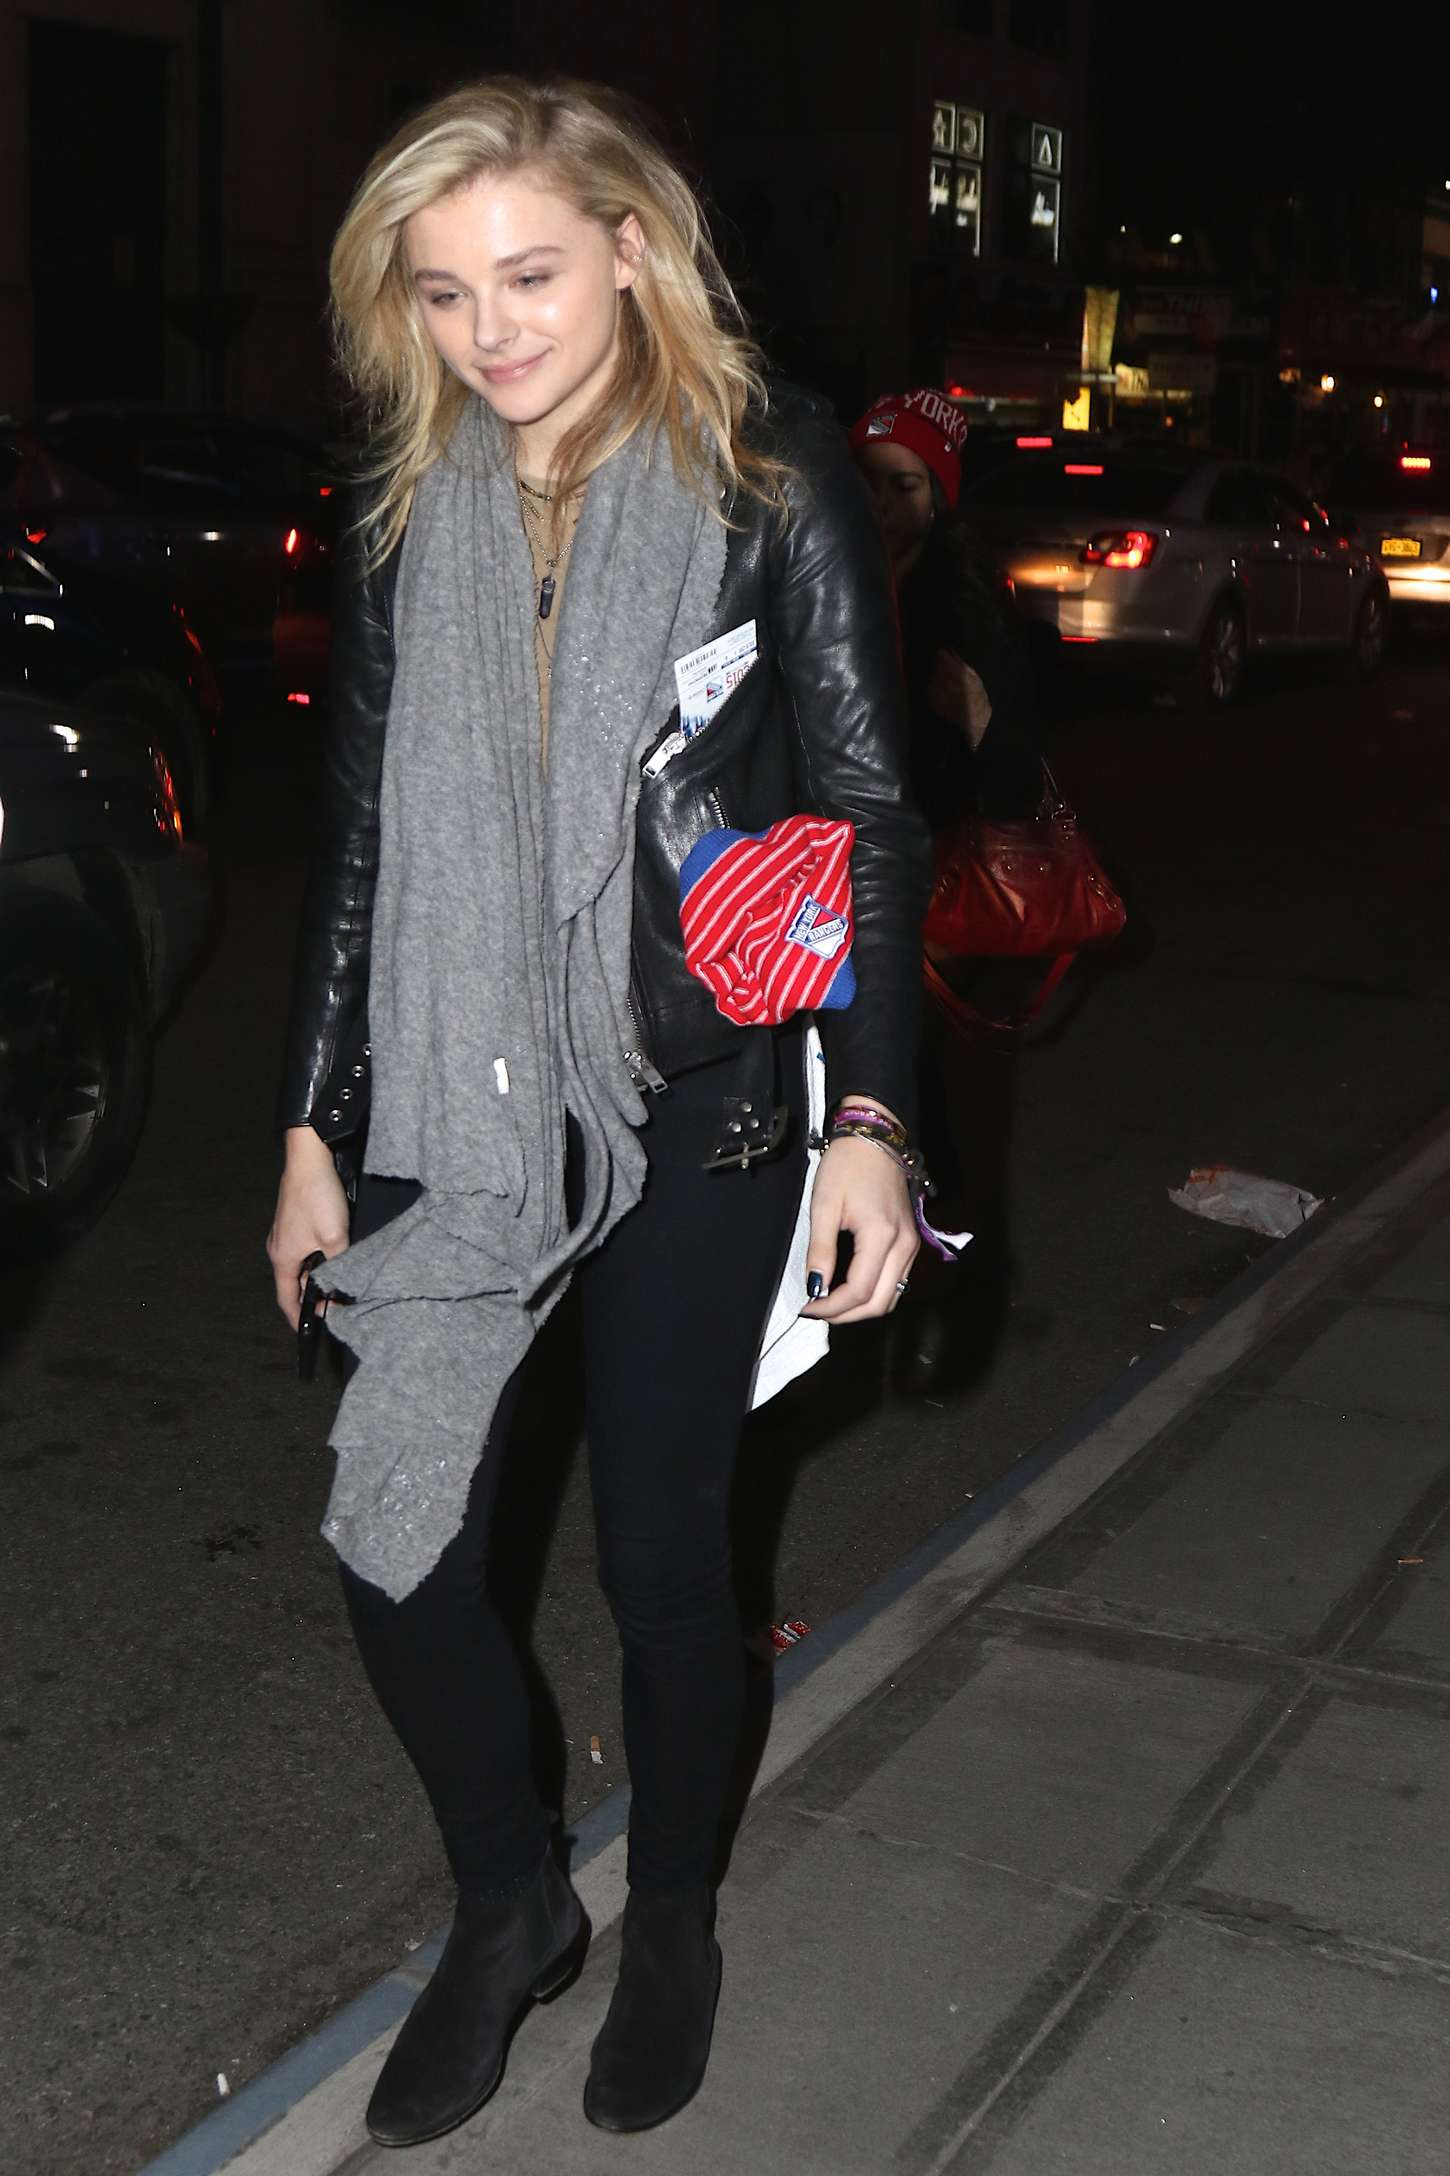 Chloe Moretz 2015 : Chloe Moretz an Tights at Madison Square Garden -13